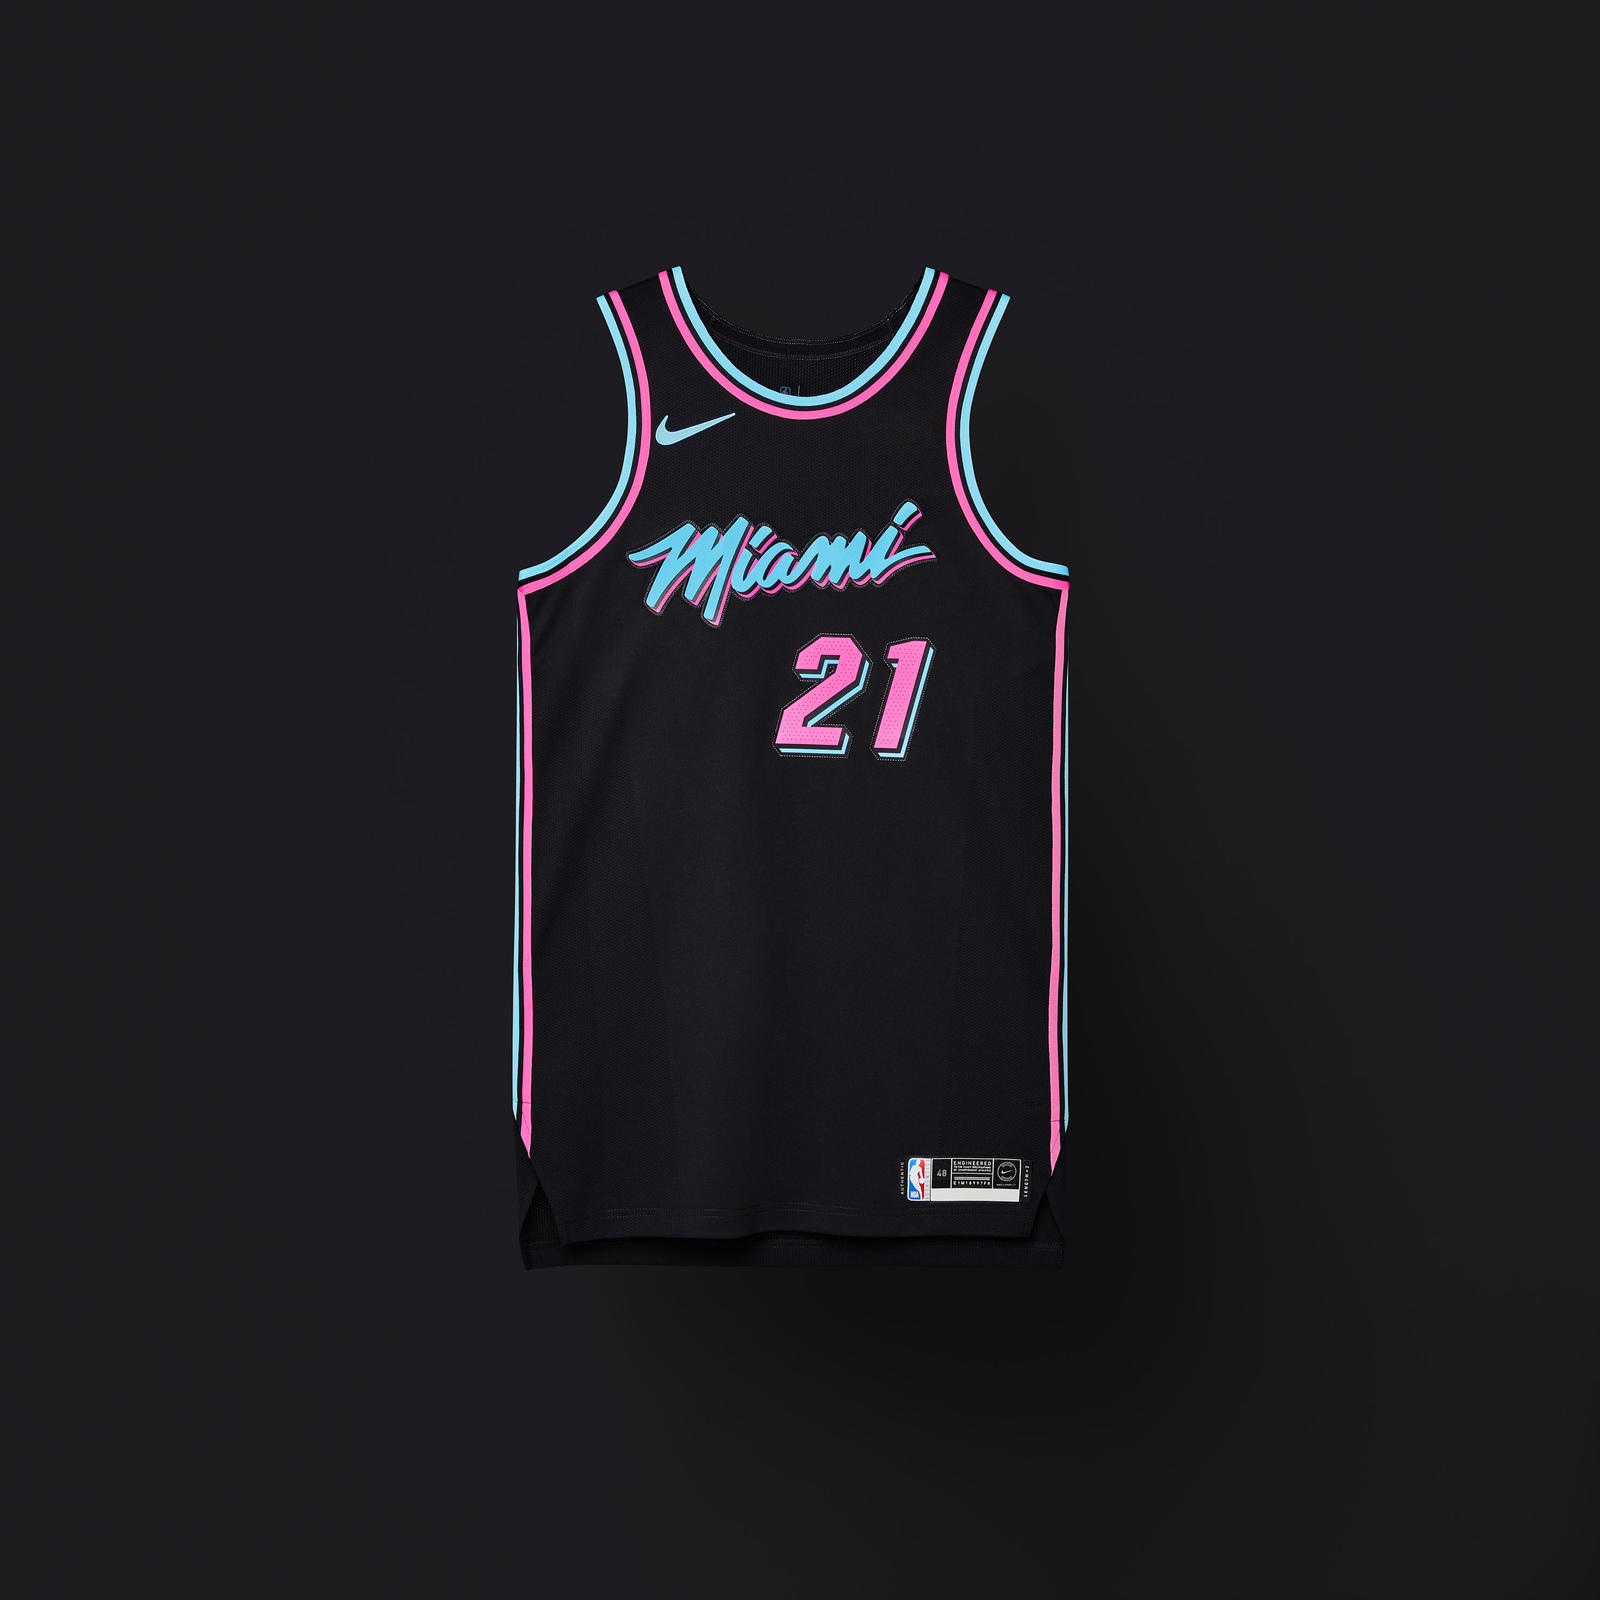 sneakers for cheap 7d03d 415d2 NBA City Edition Uniforms 2018-19 - Nike News